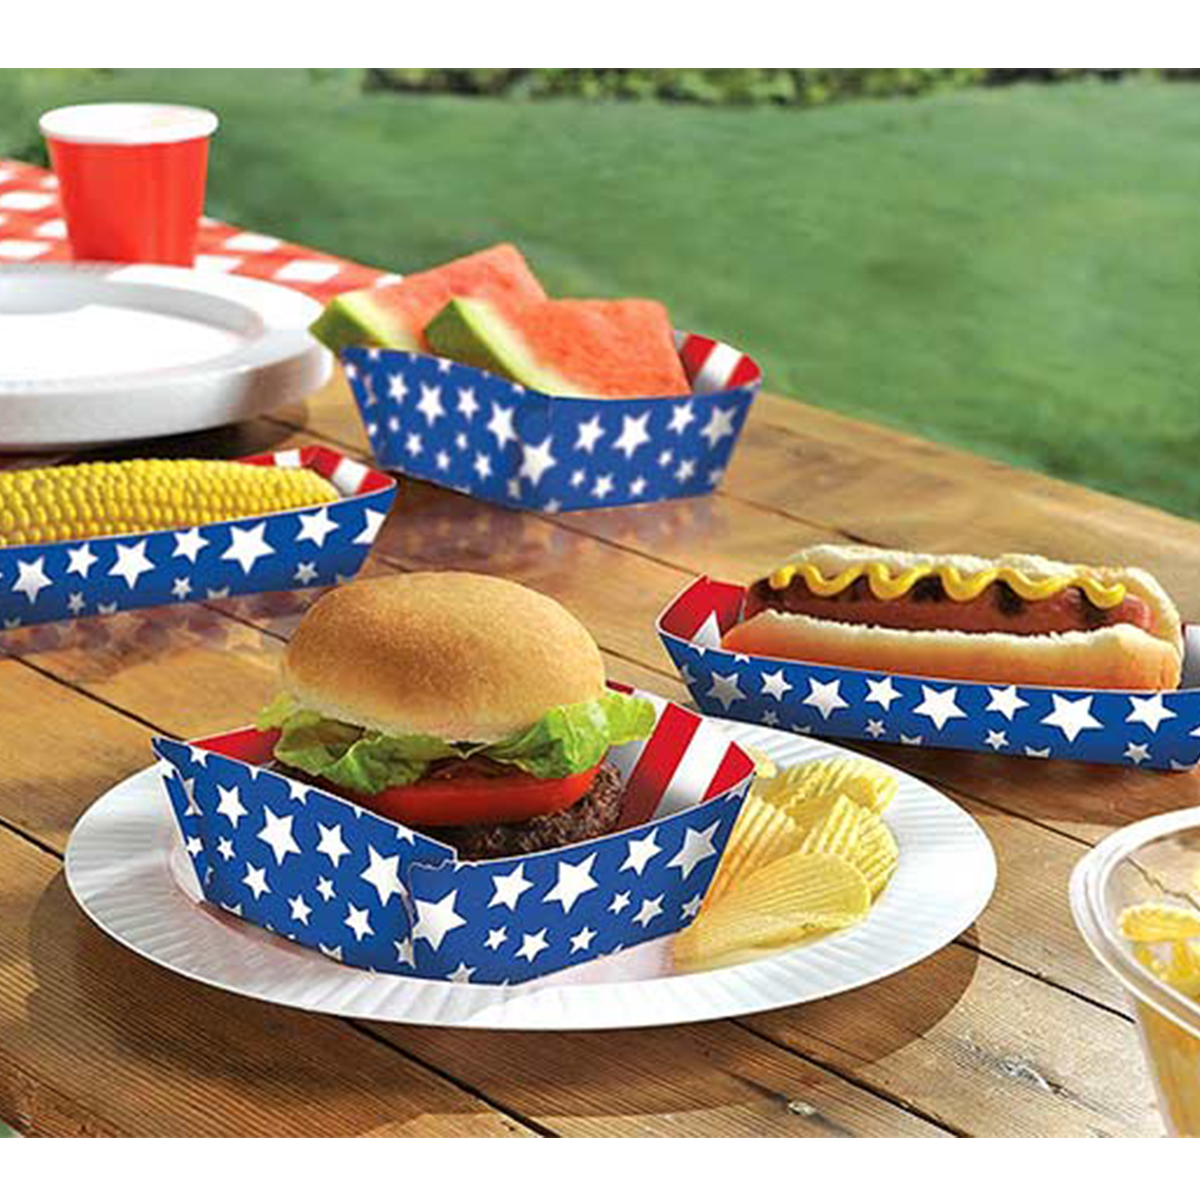 Paper food trays with red and white striped insides and blue and white stars on the outside photo